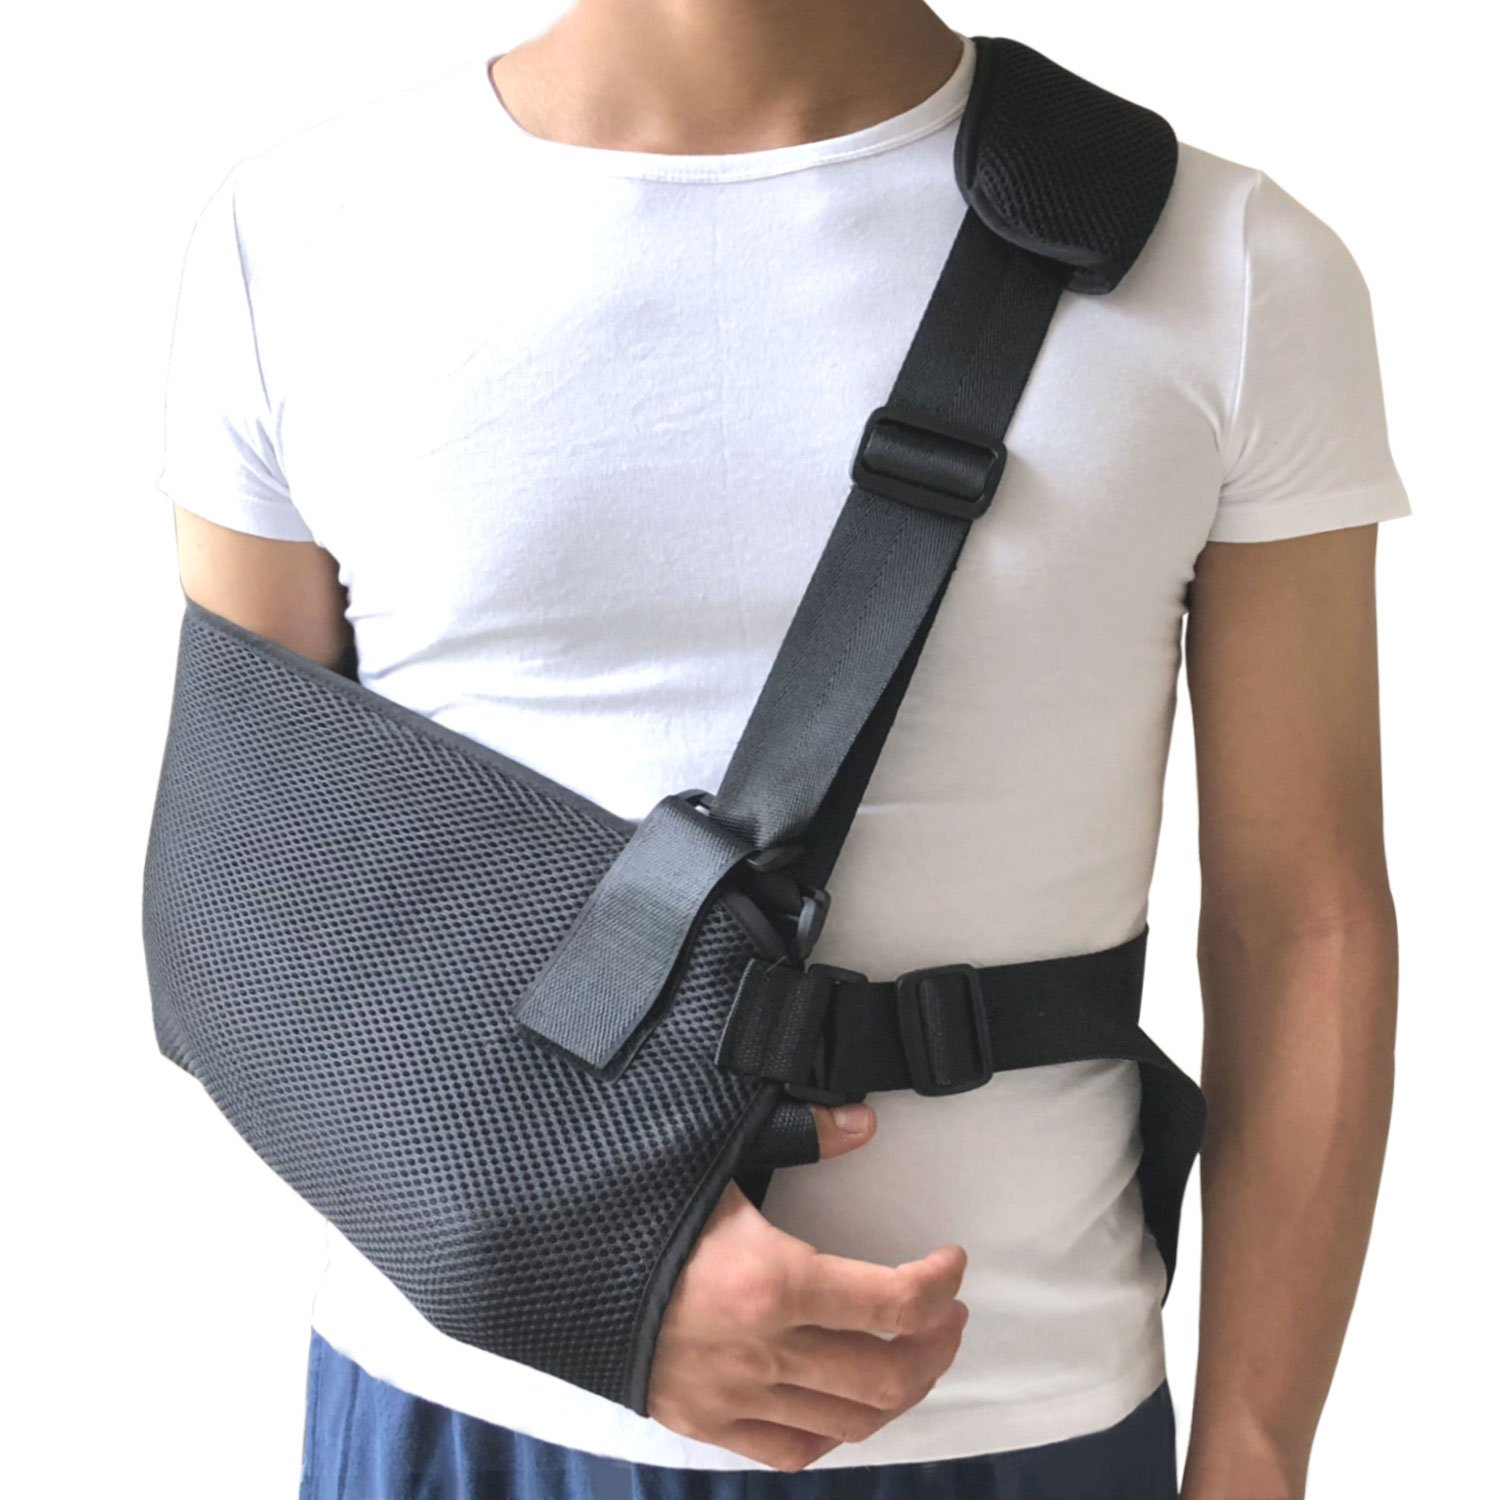 Arm Sling Shoulder Immobilizer with Adjustable Split Strap, Lightweight Breathable Wrist Elbow Support for Dislocation, Fracture, Sprains & Broken Arm, Fits Both Adults and Youths by Jeelathy